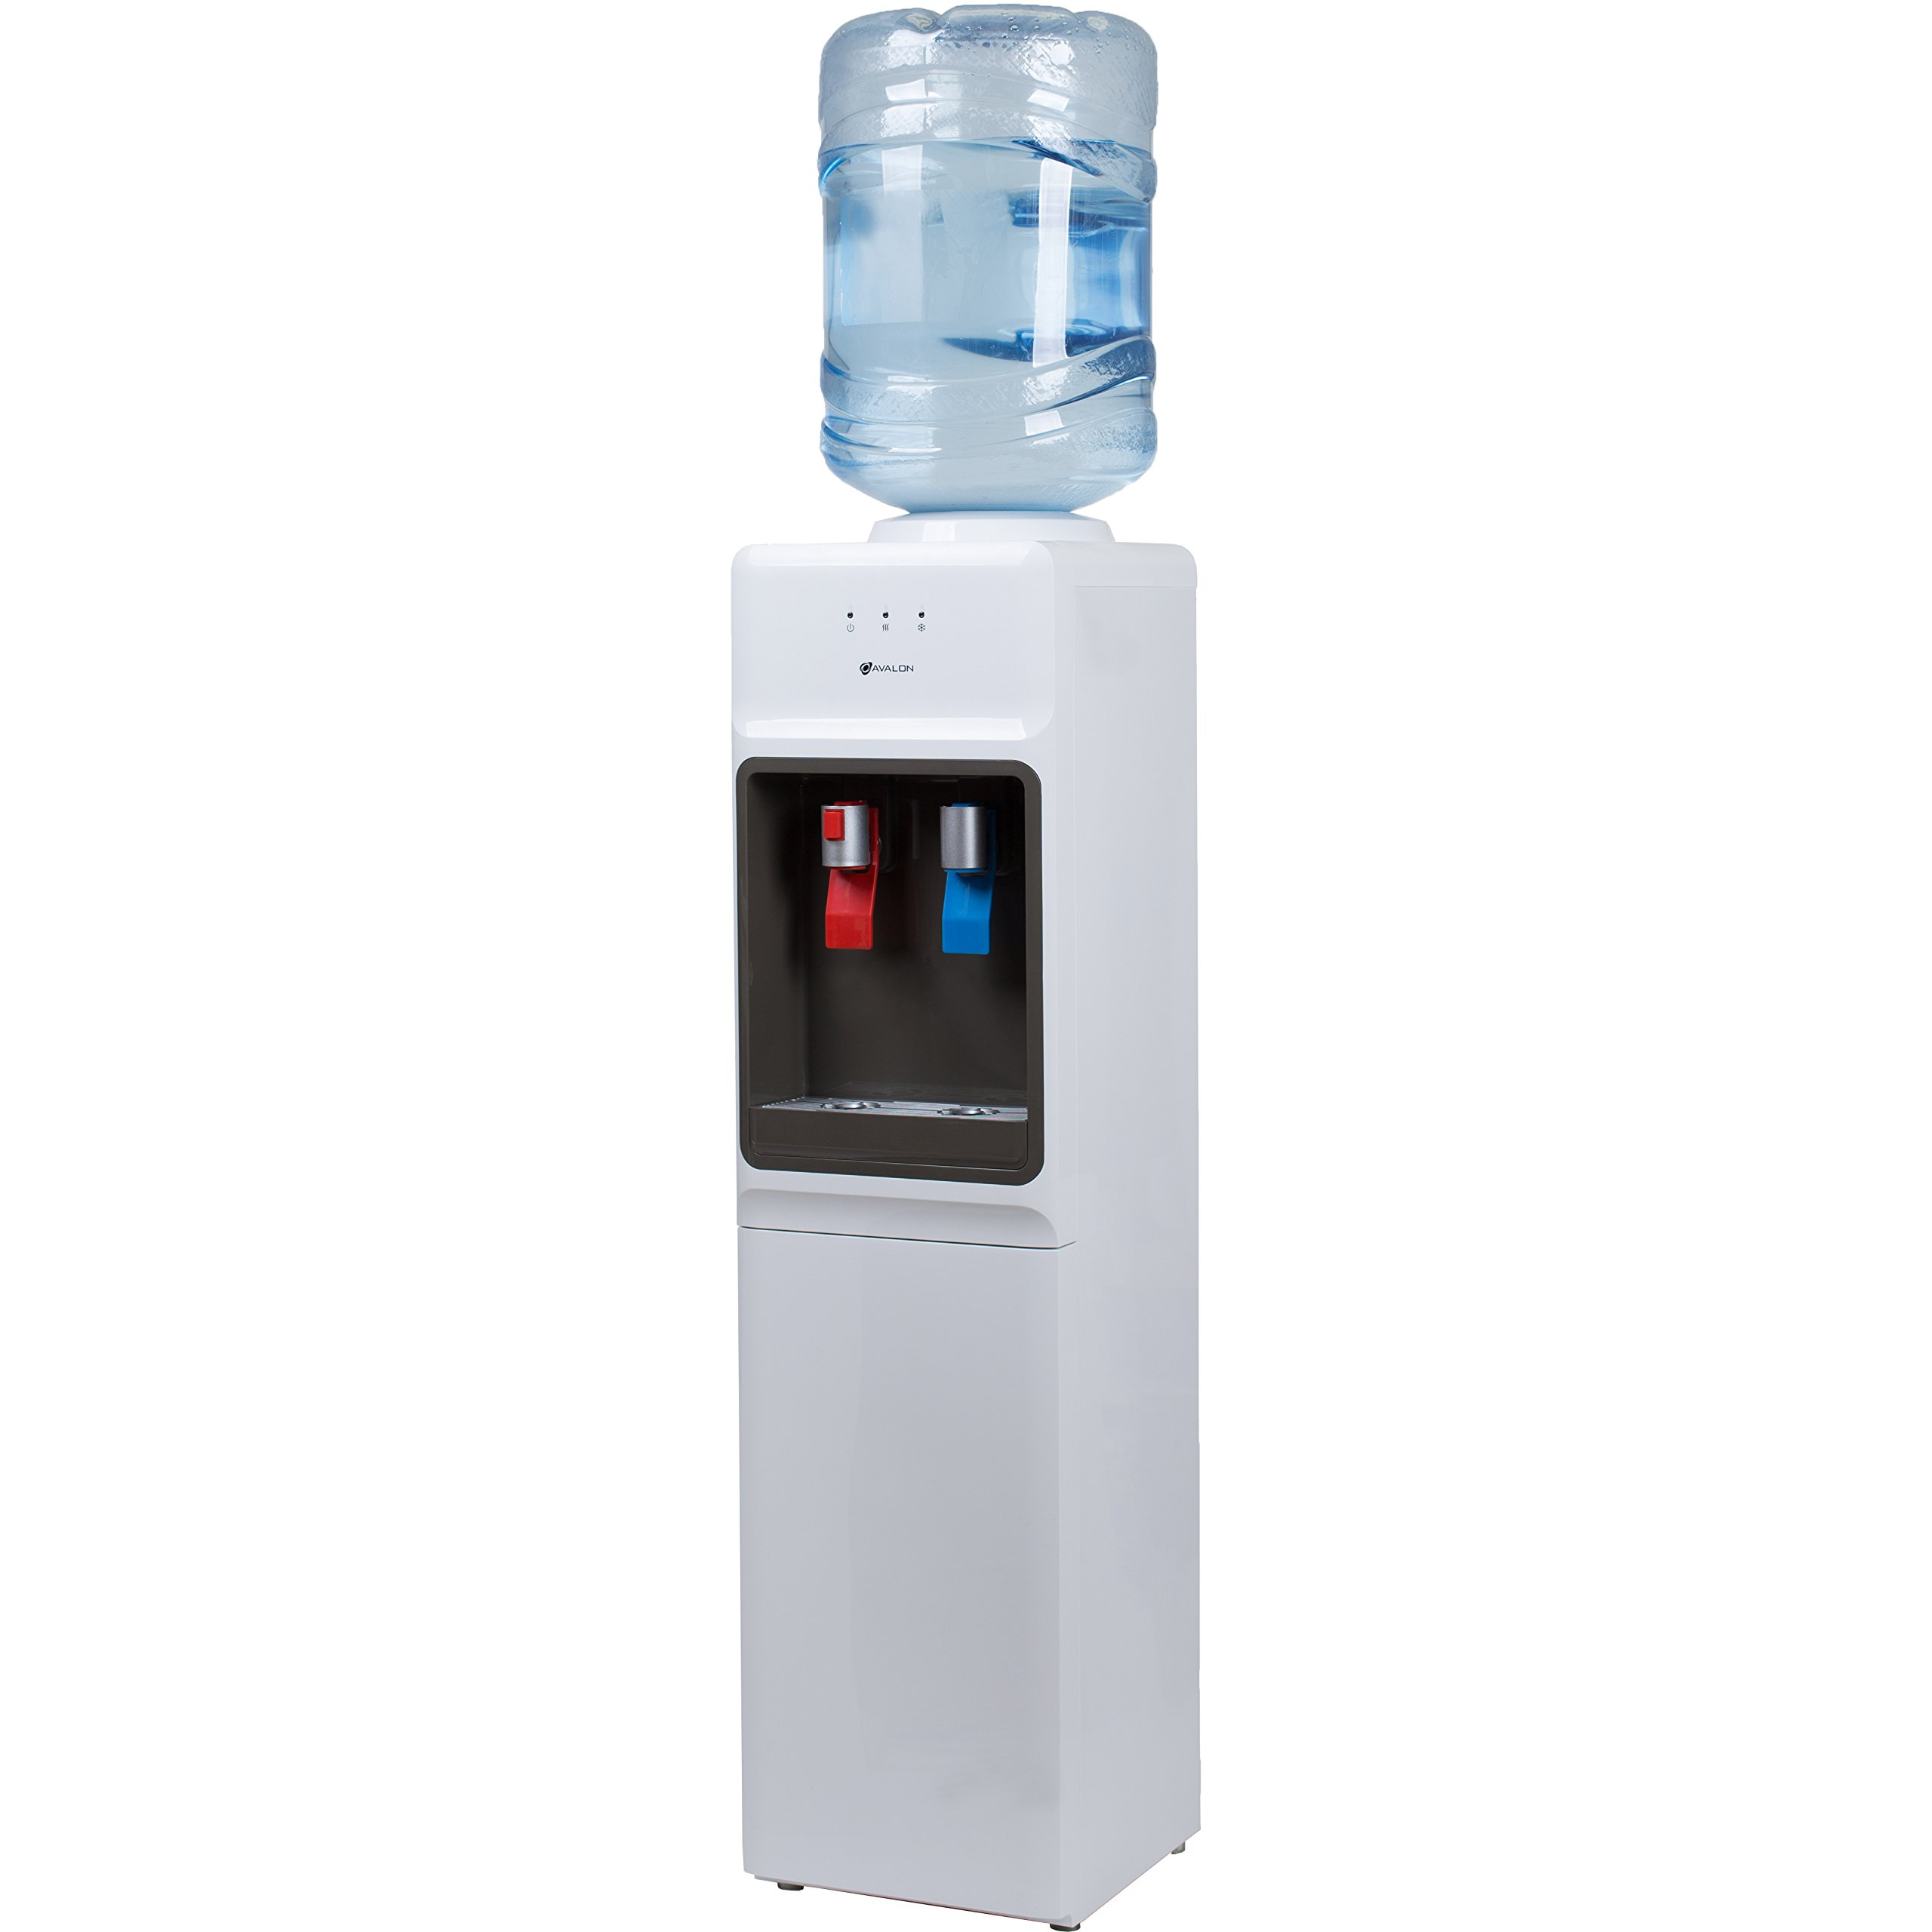 Avalon Top Loading Water Cooler Dispenser - Hot & Cold Water, Child Safety Lock, Innovative Slim Design, Holds 3 or 5 Gallon Bottles - UL/Energy Star Approved by Avalon (Image #2)